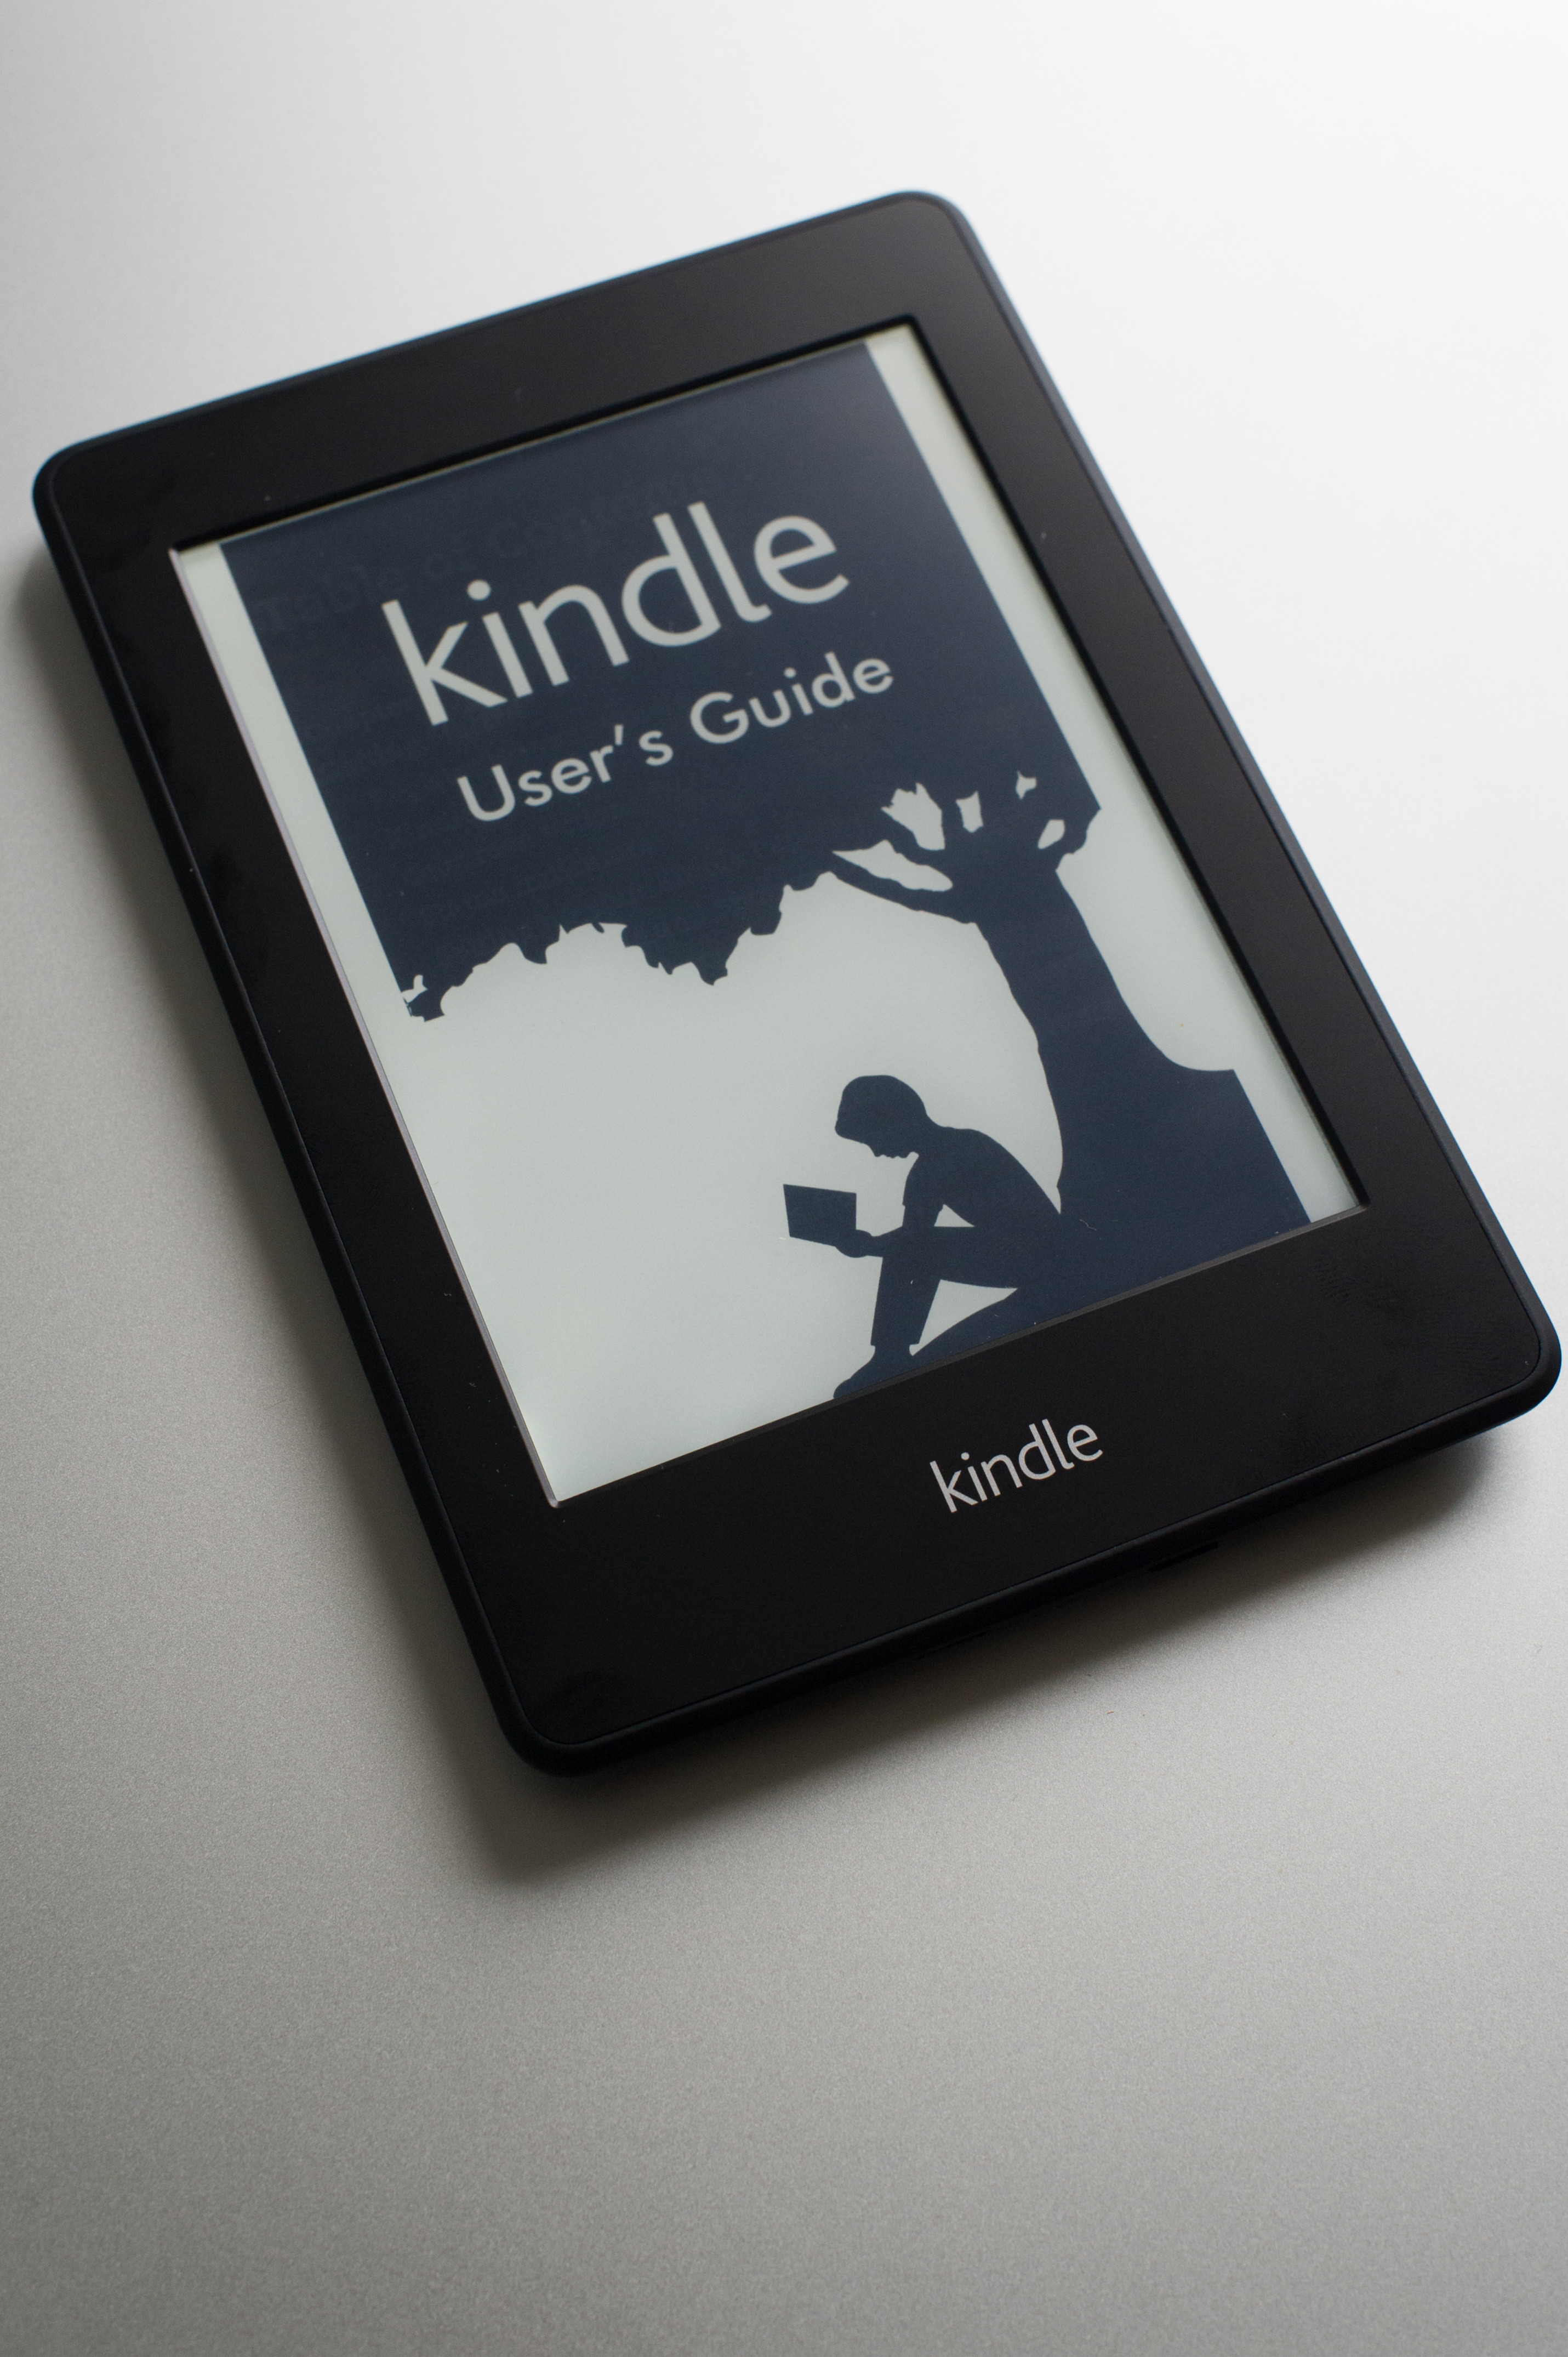 View of an Amazon's Kindle reader.